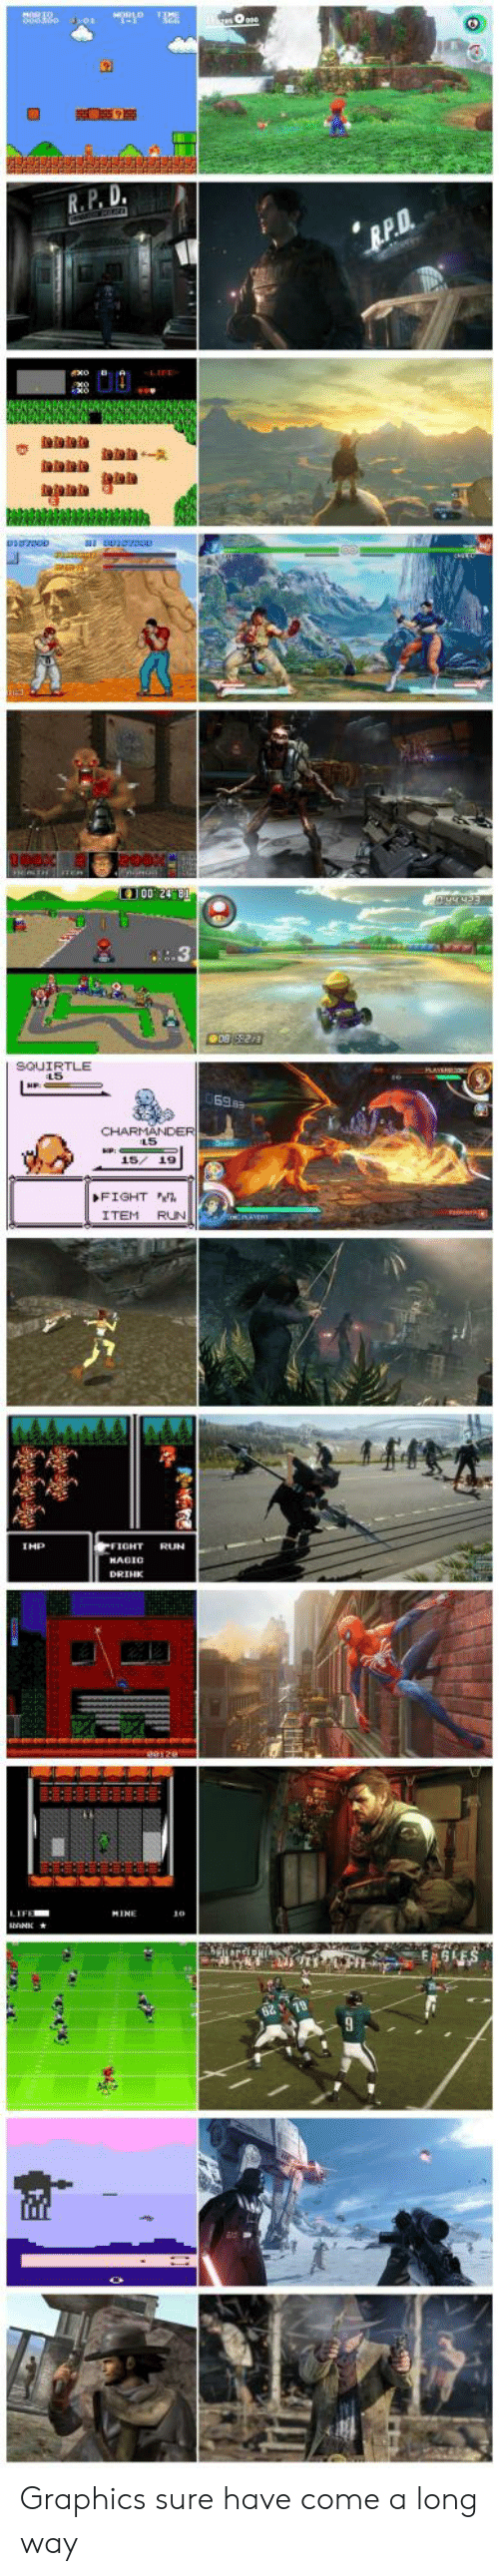 squirtle: R.P. D  100 248  SQUIRTLE  FIGHT  ITEM RUN  IHP  IFE Graphics sure have come a long way